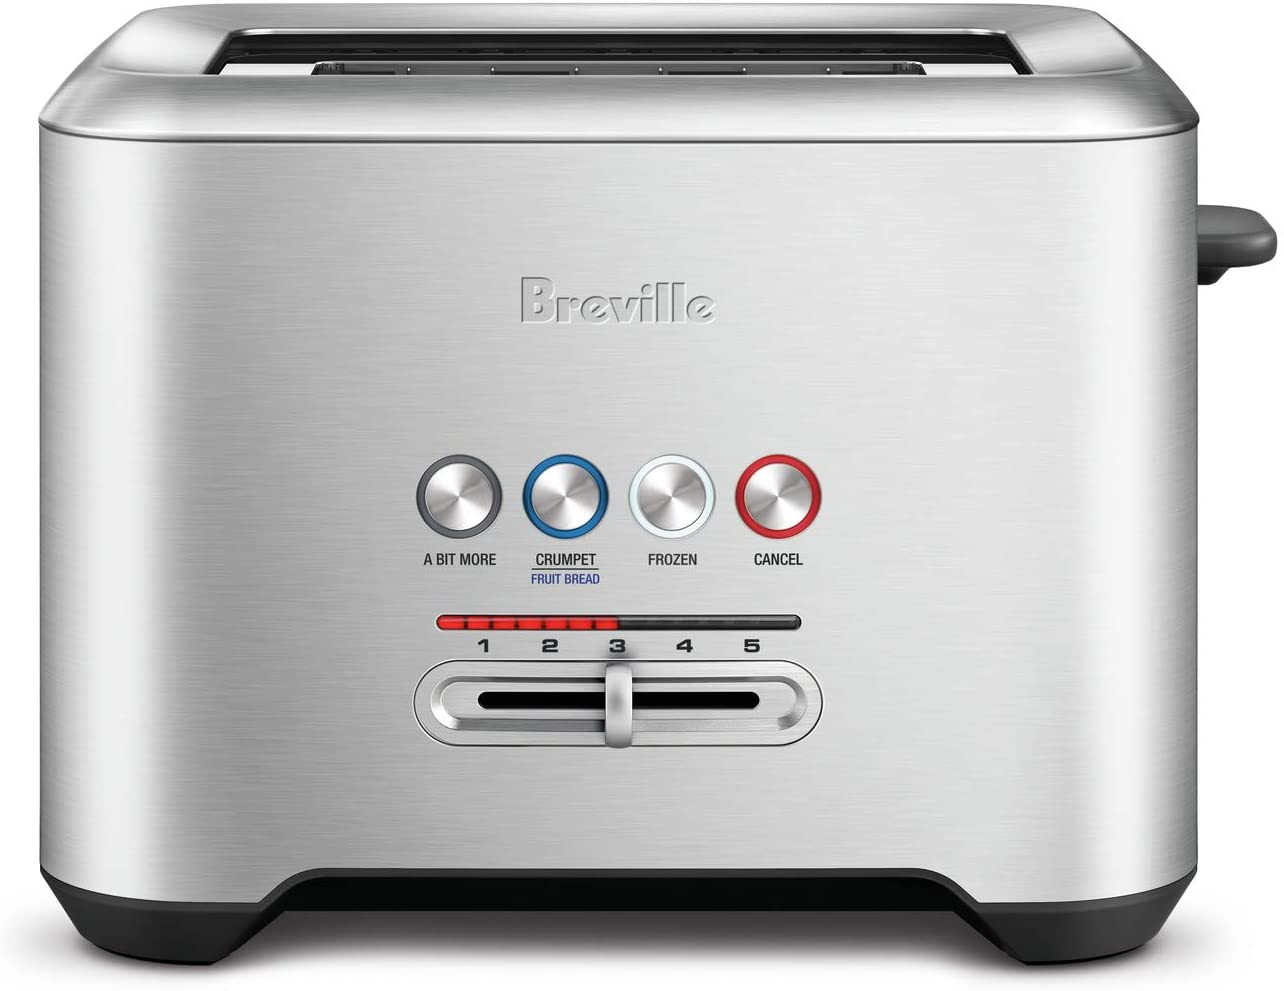 Breville BTA720XL Bit More 2-Slice Toaster, Brushed Stainless Steel